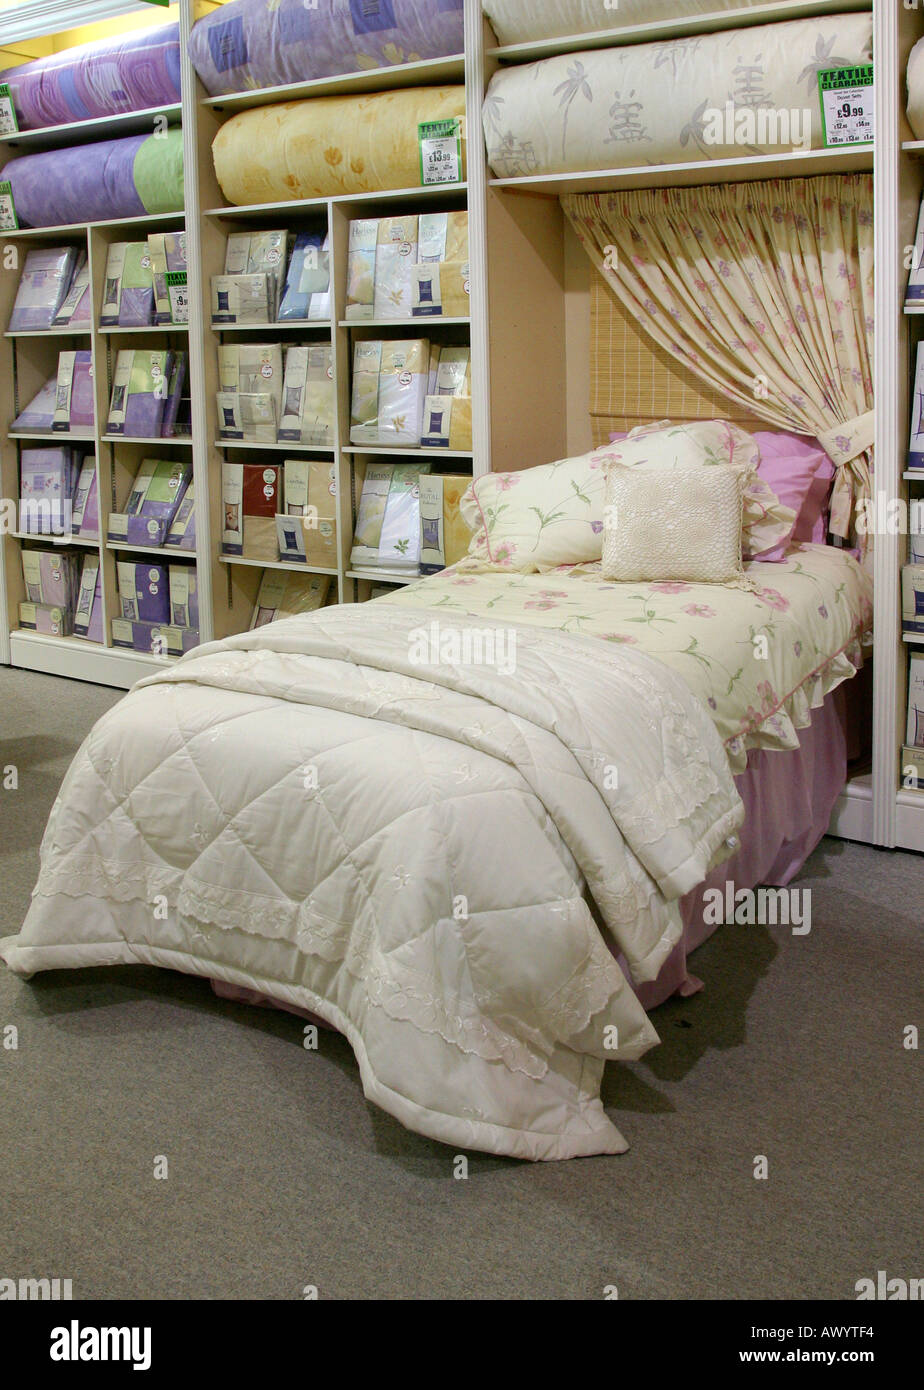 Duvet Cover And Bed Linen On Display In Store